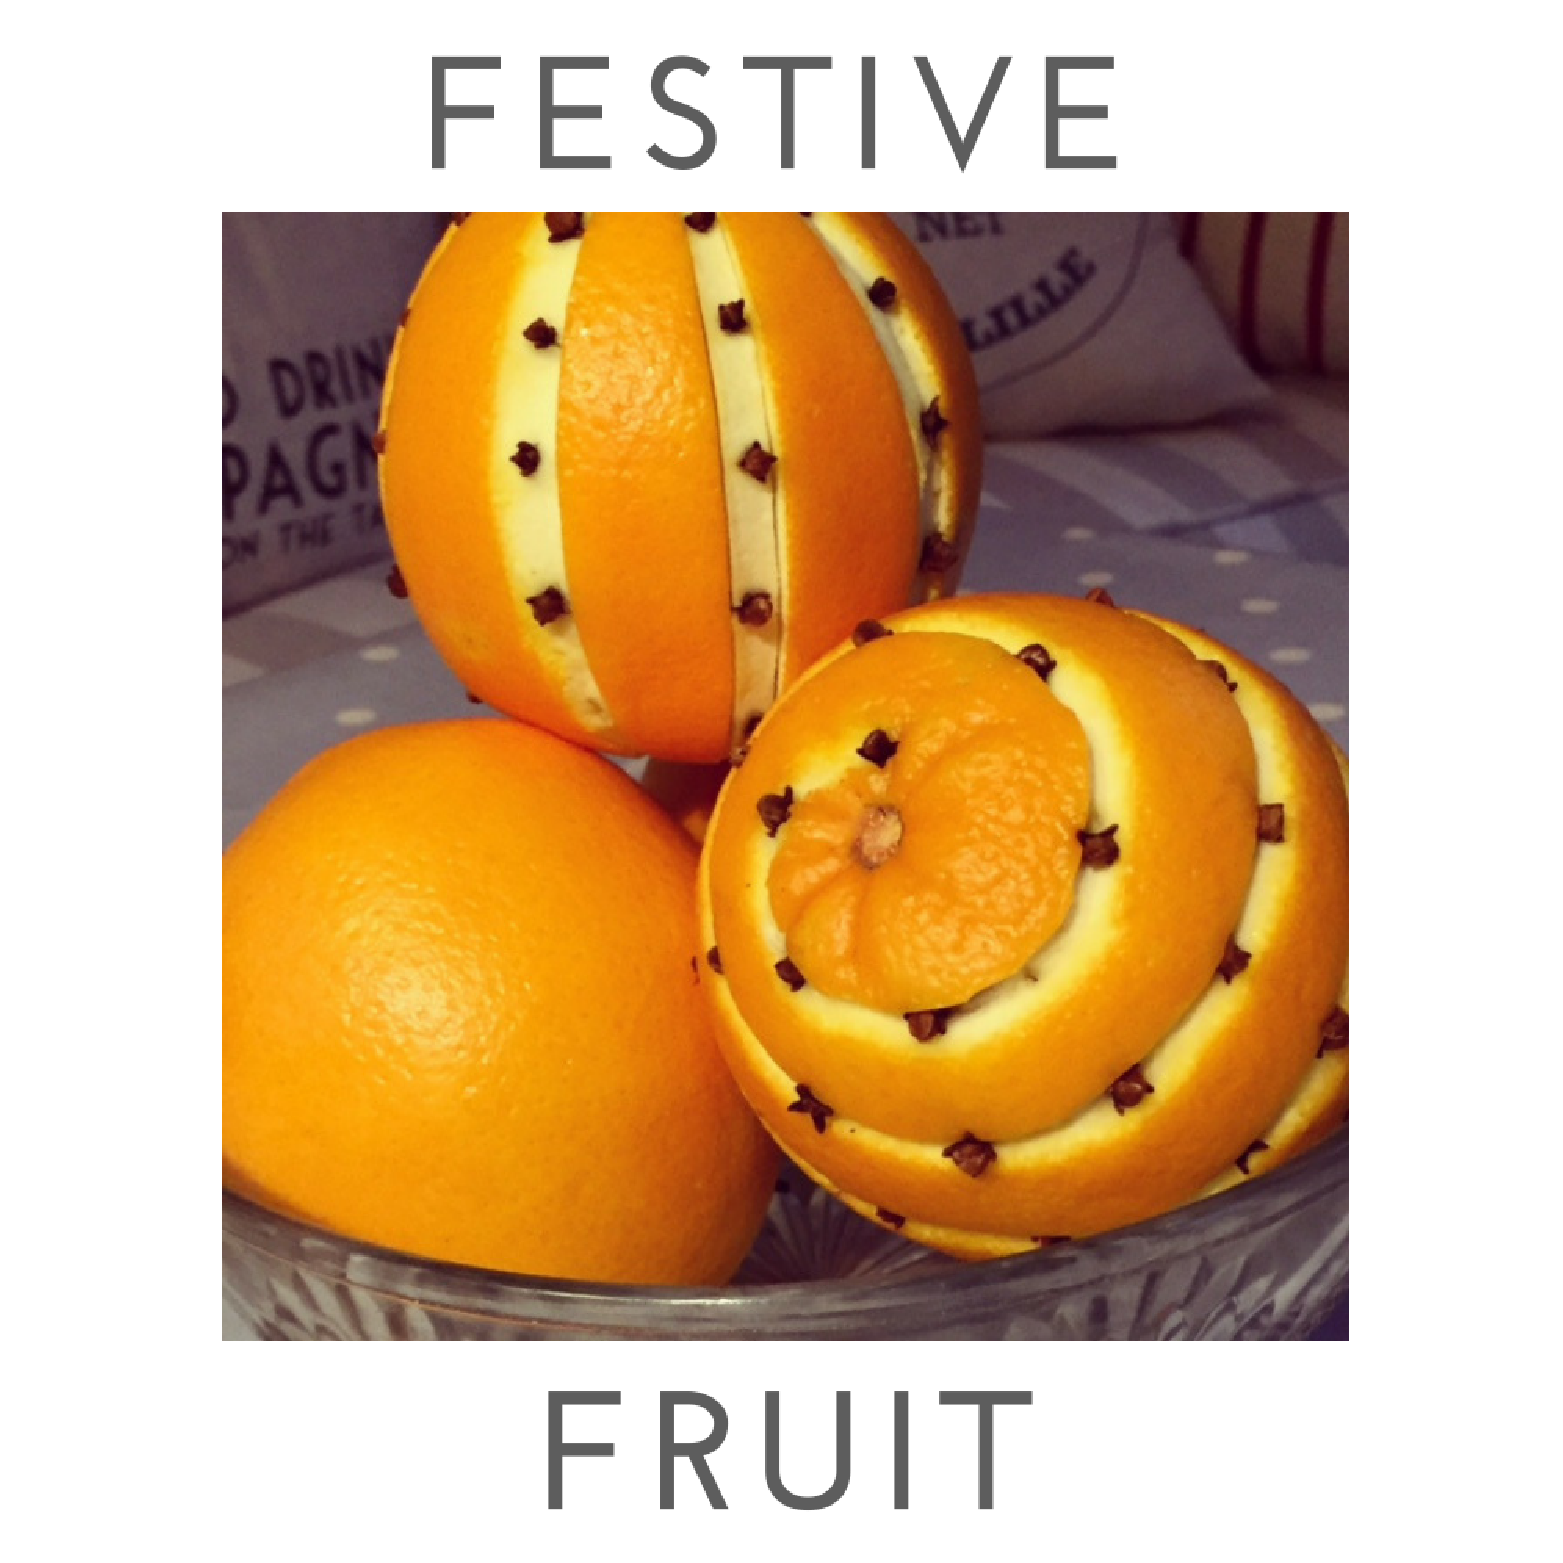 festive-fruit.png